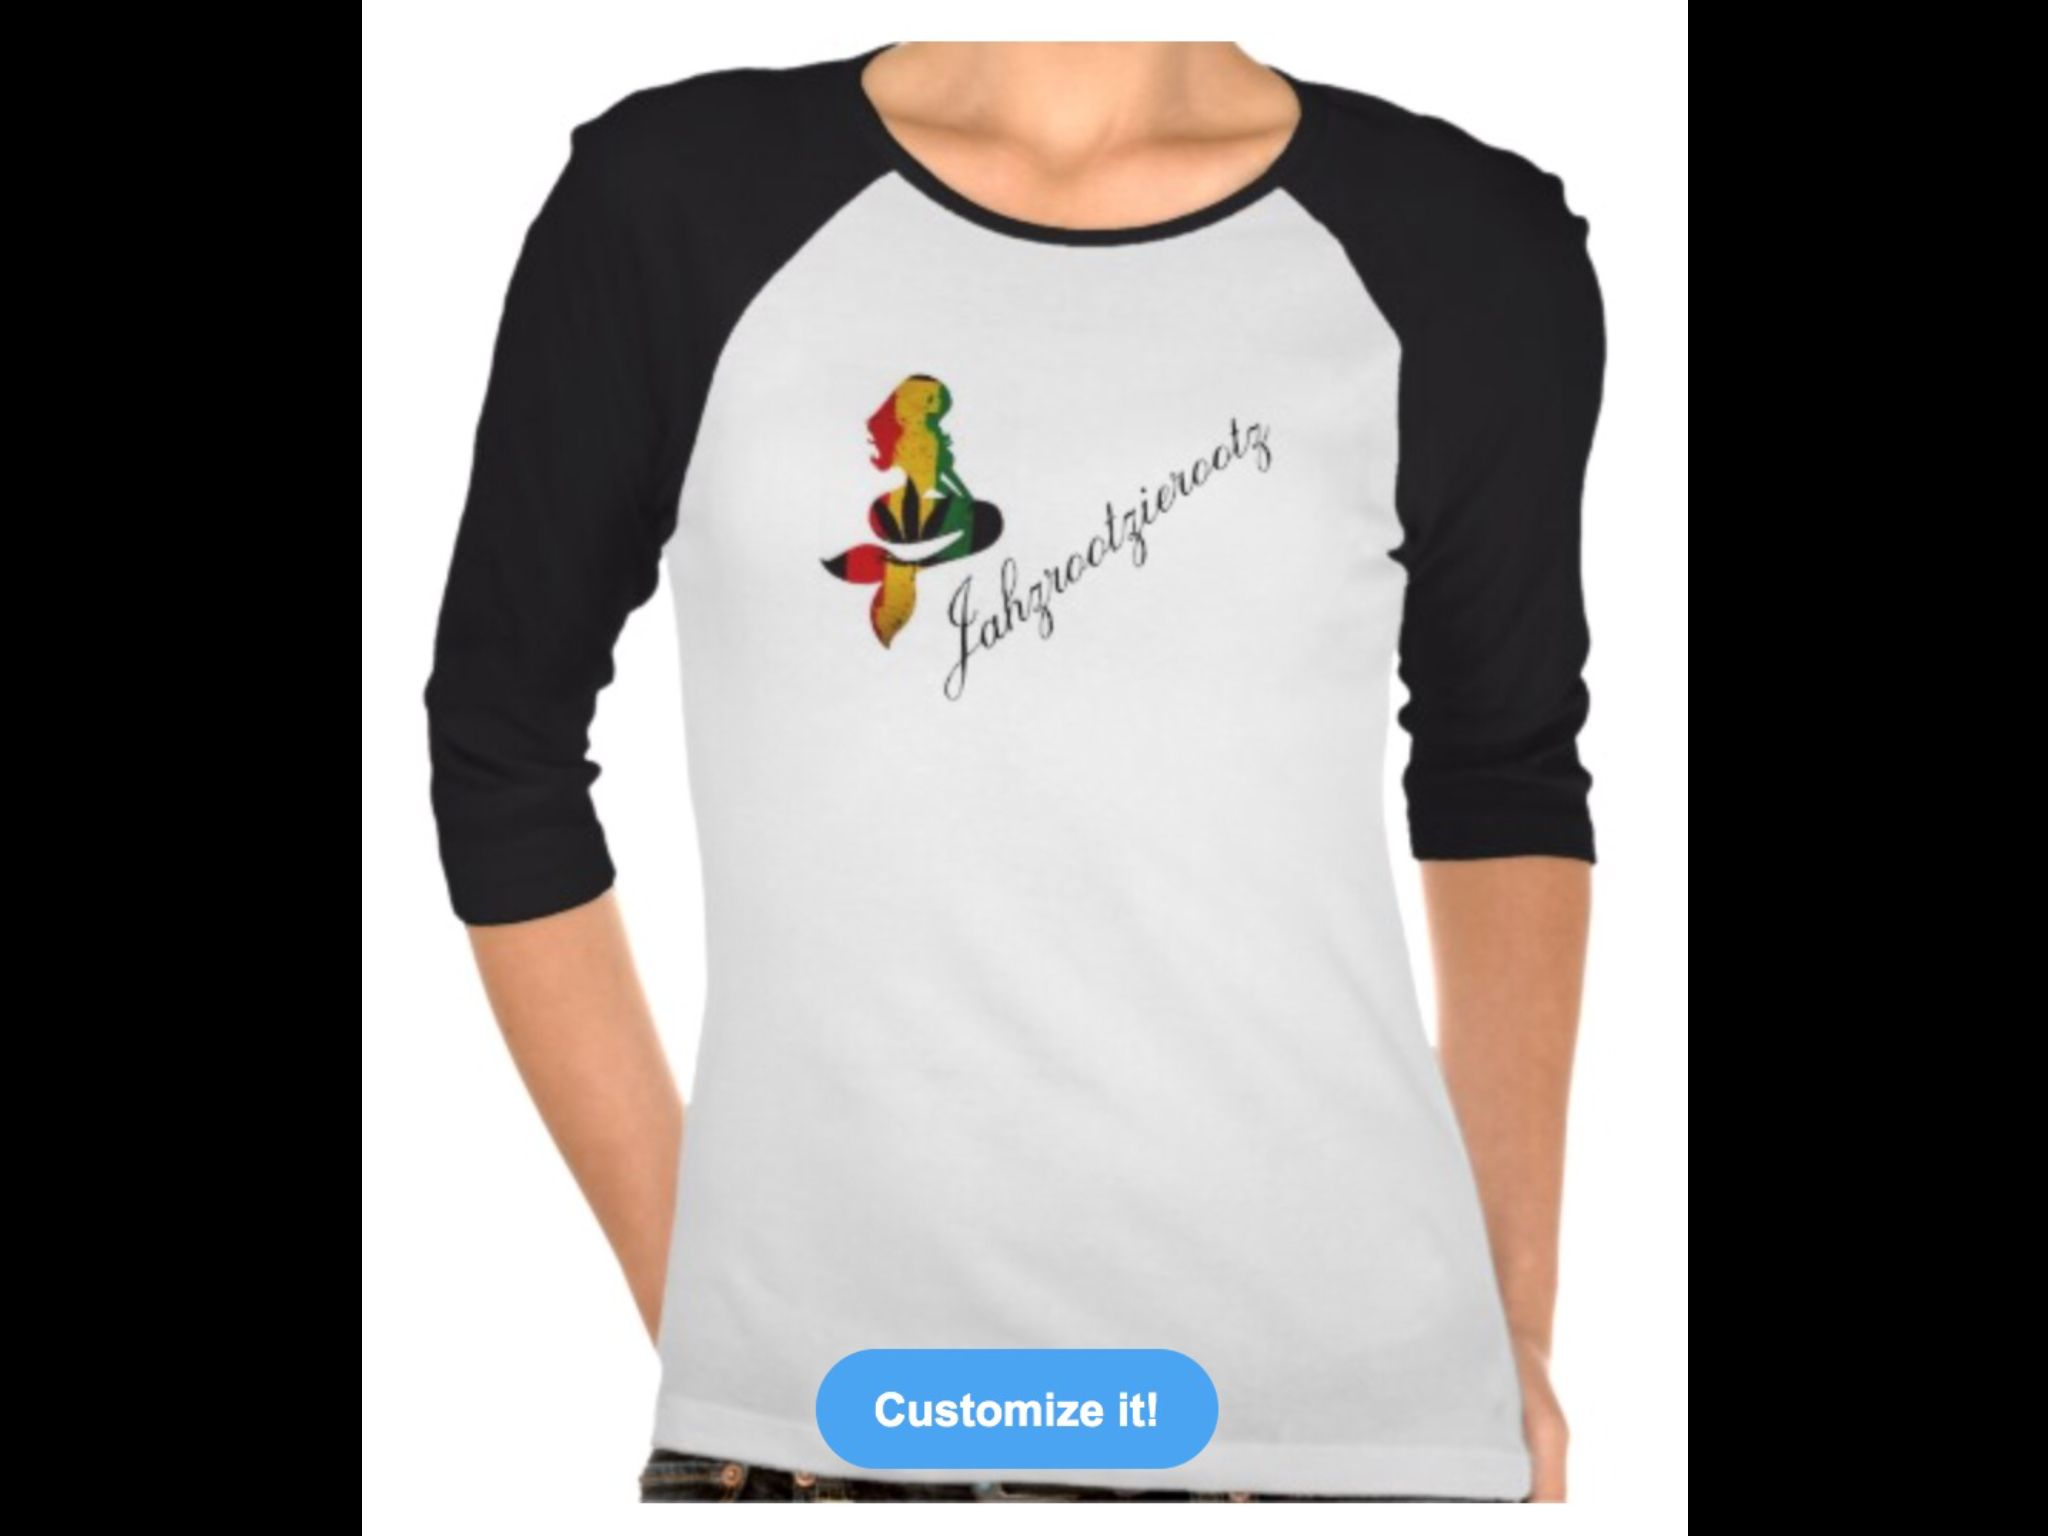 New line of women's 3/4 sleeve Jahzrootzierootz designs! Go checkout the new merchandise. Http://www.zazzle.com/Jahzrootzierootz*/